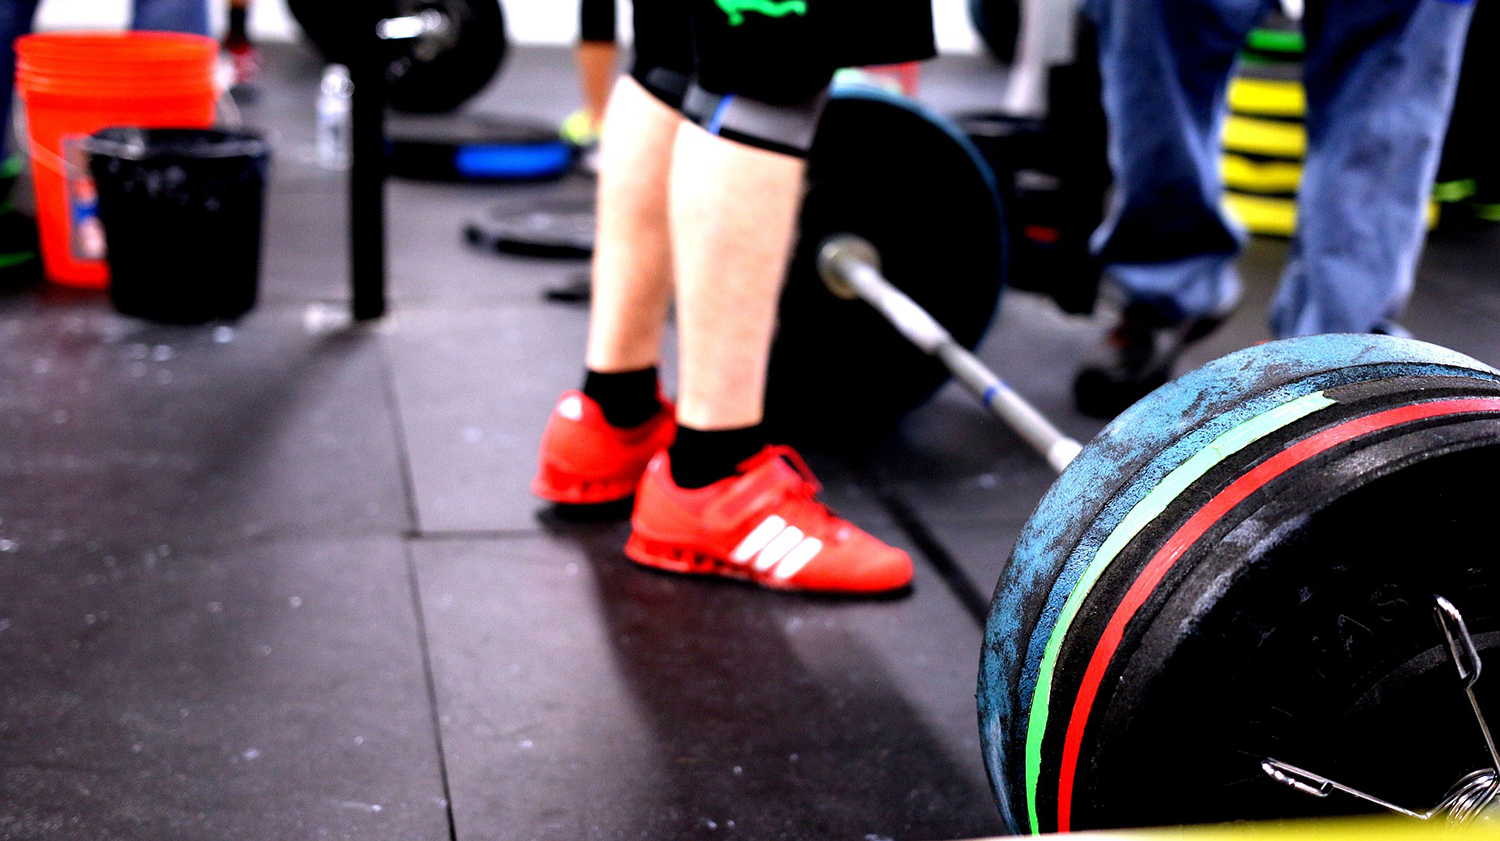 Crossfit Barbell Weight Lifting